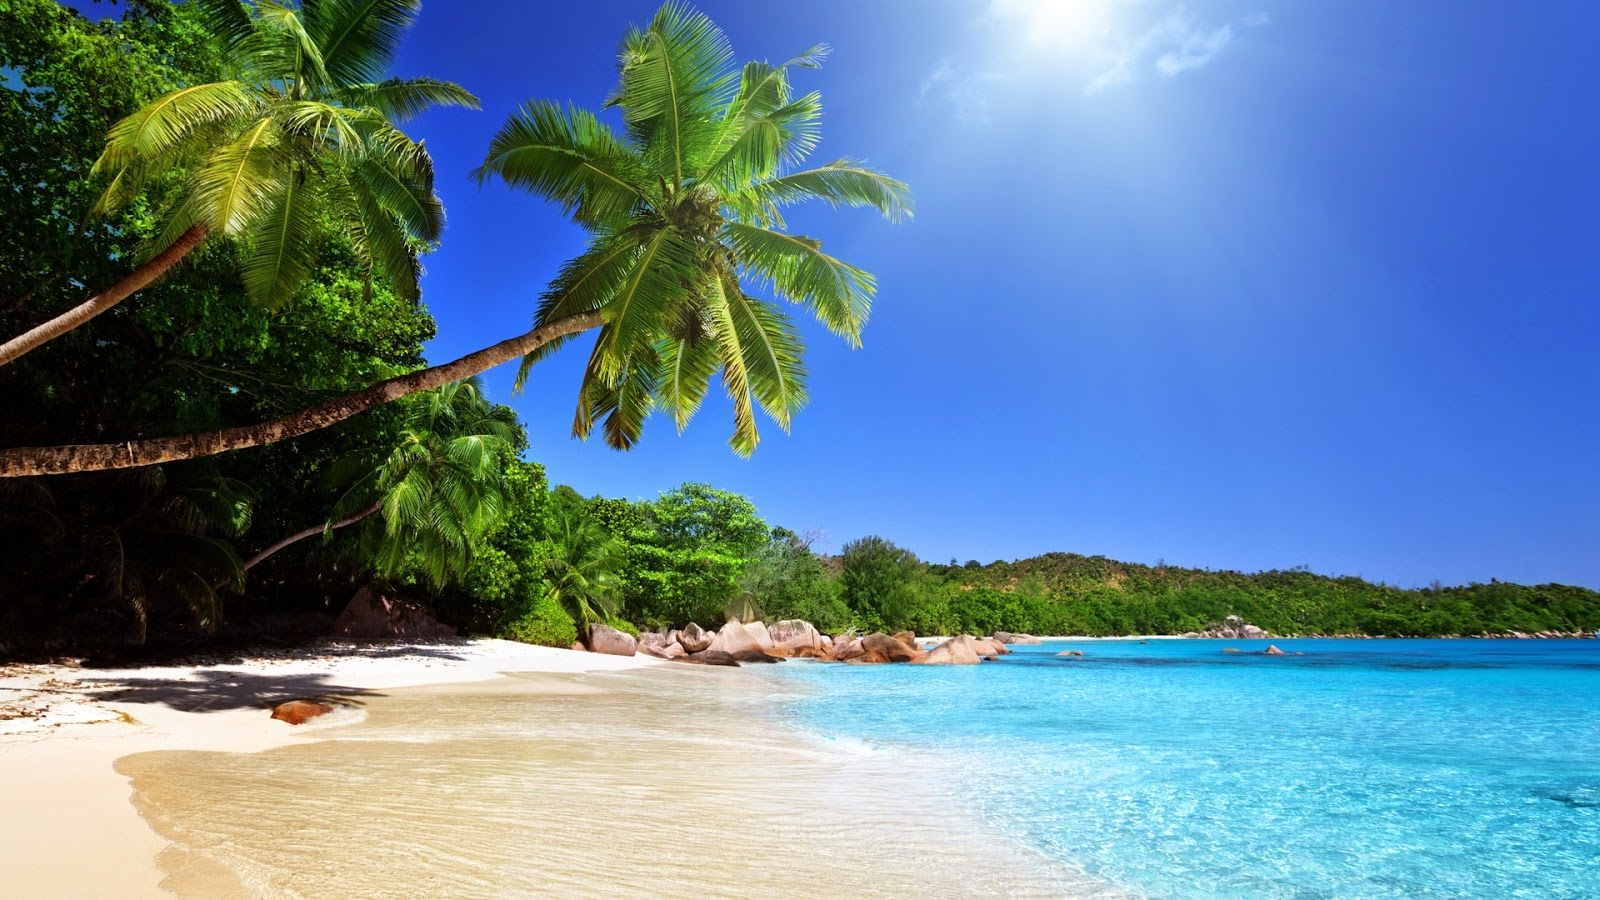 Best-beach-wallpapers-collection-HD-1080p-tumblr-free-download.jpg